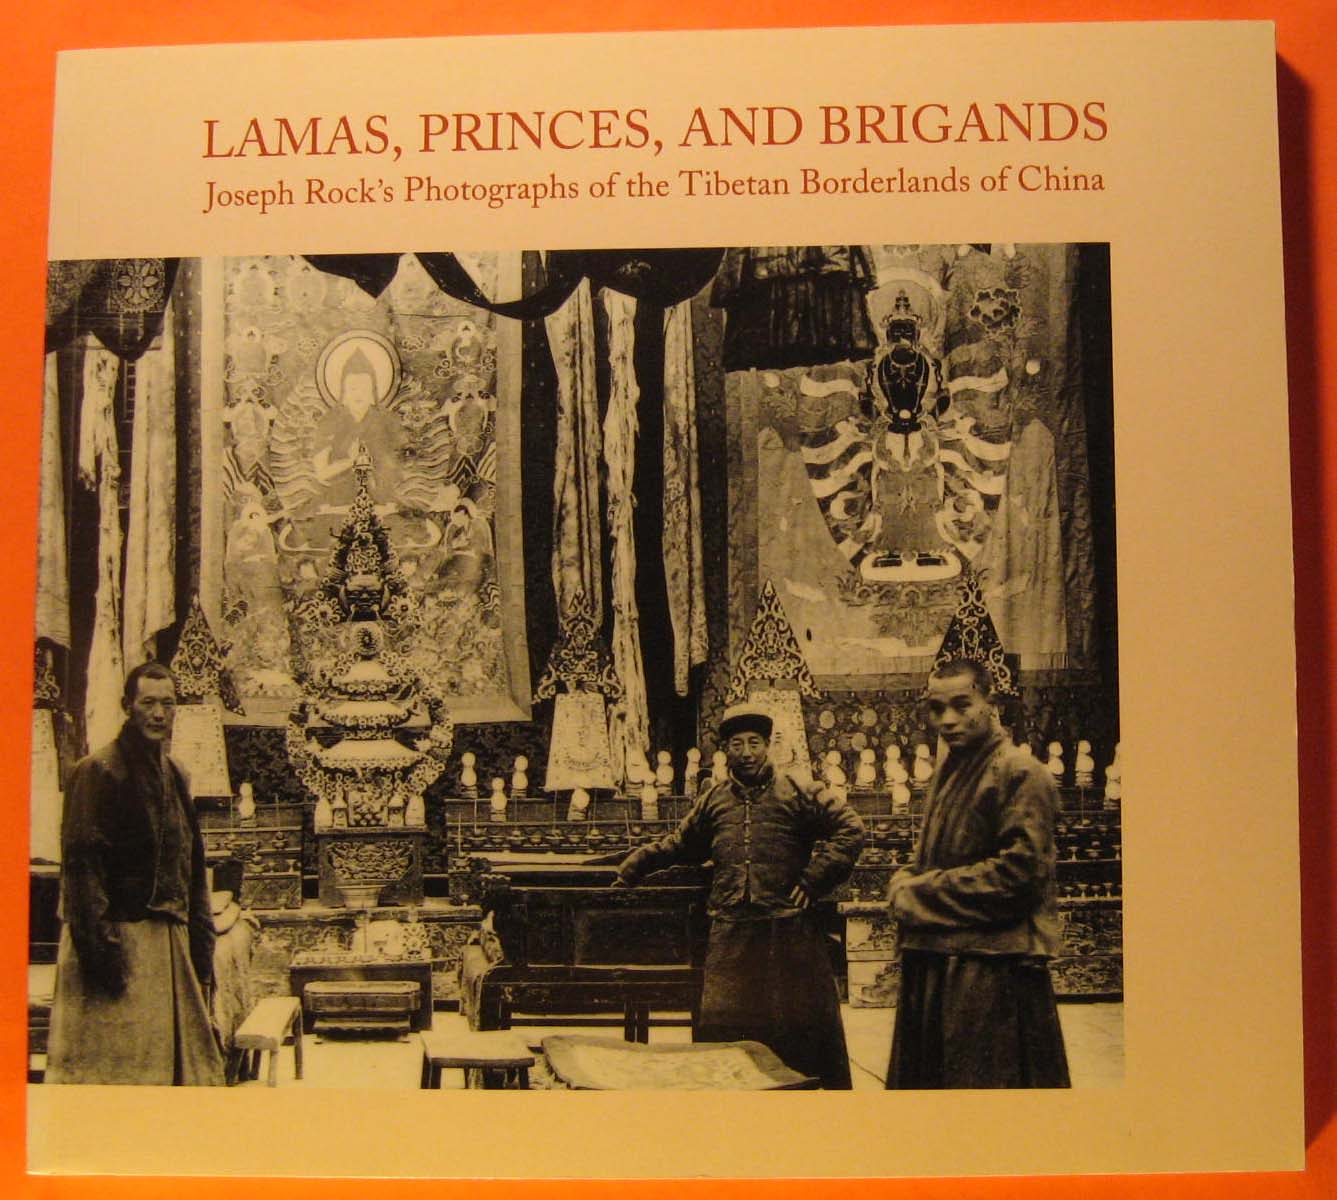 Lamas, Princes, and Brigands: Joseph Rock's Photographs of the Tibetan Borderlands of China